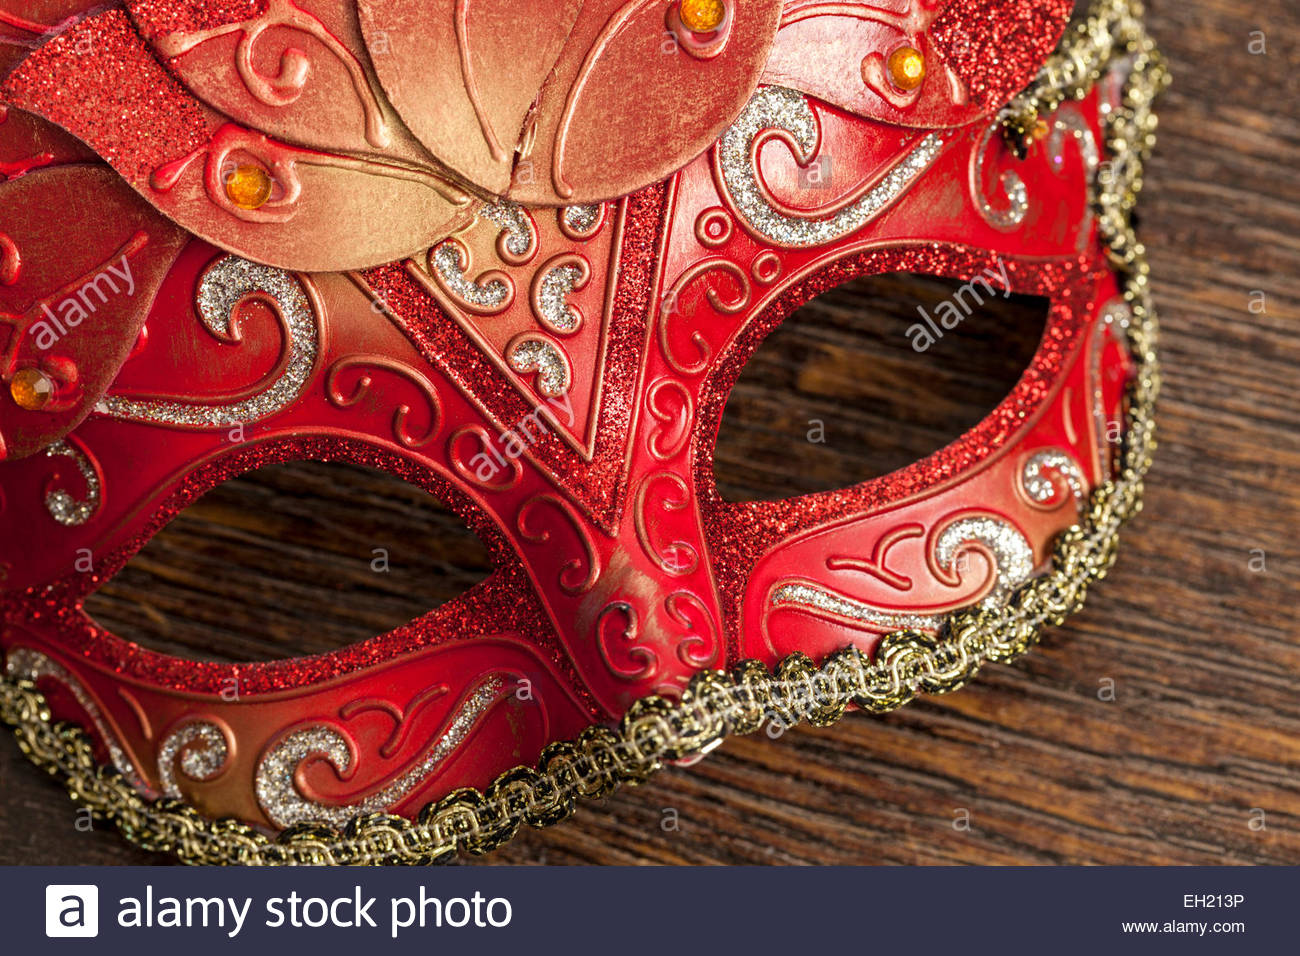 Red, gold and silver theatrical mask - Stock Image